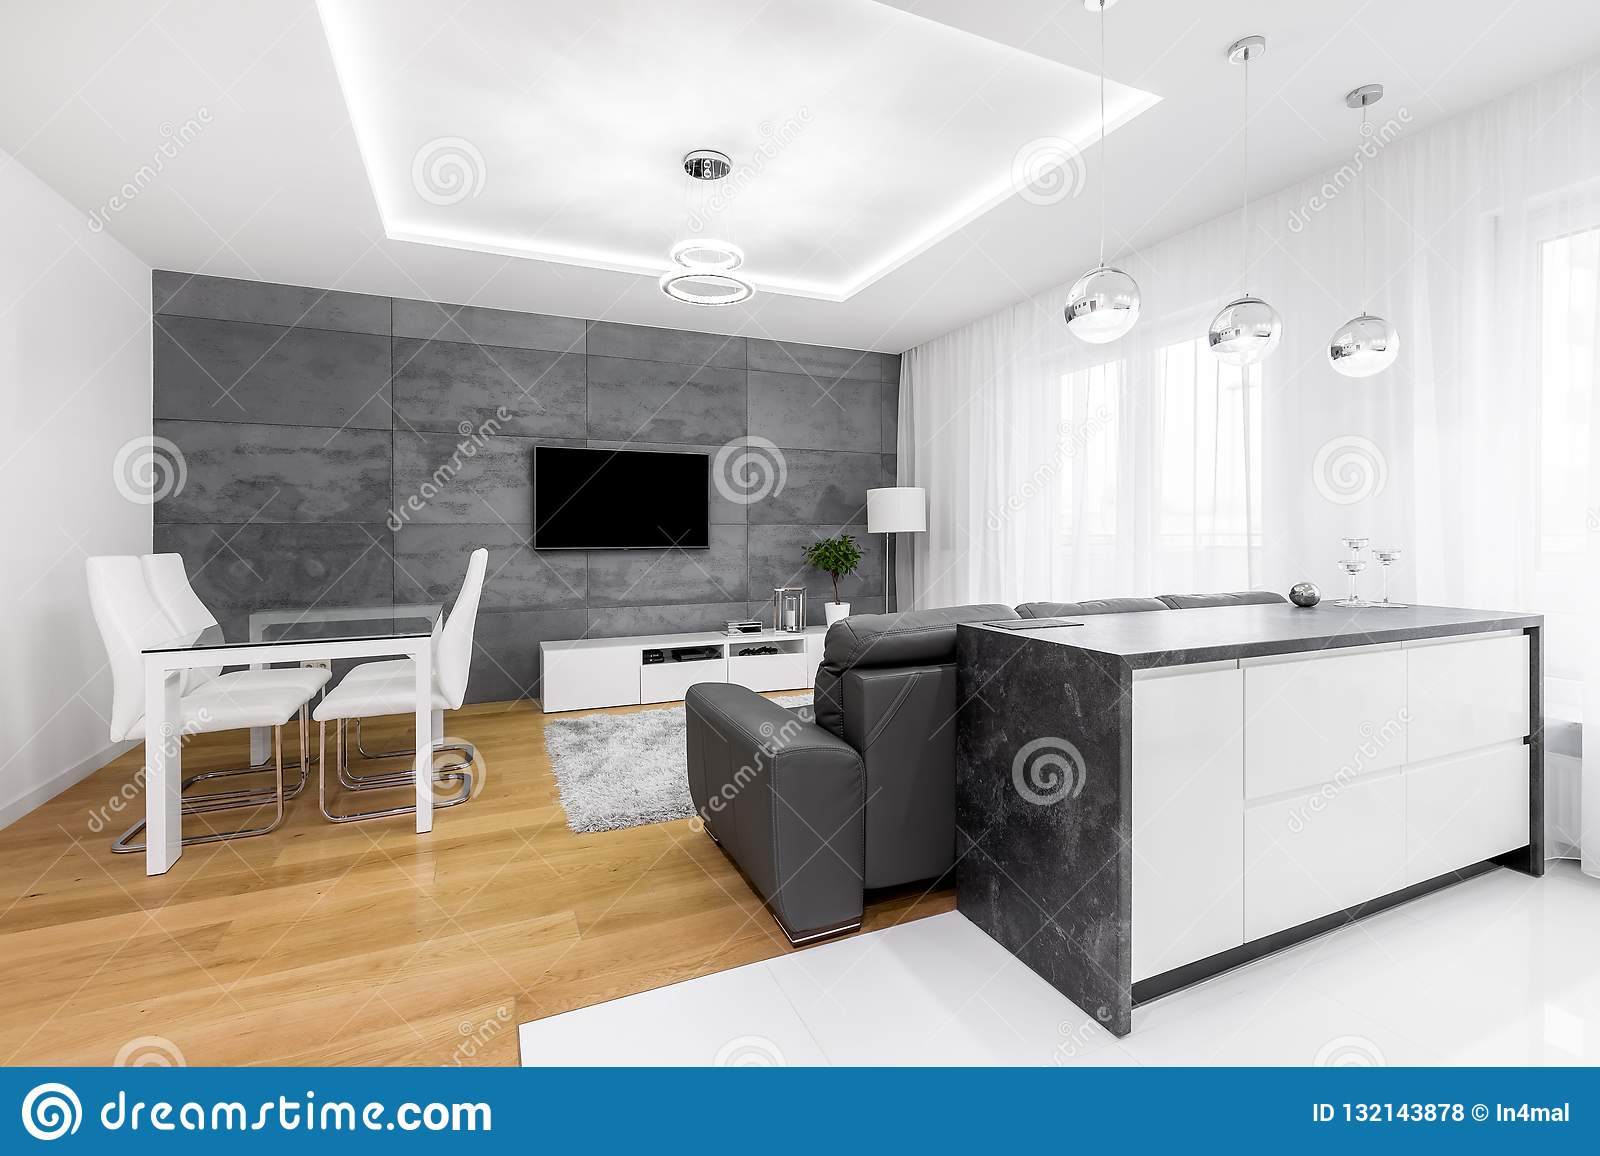 Open Living Room With Kitchen Stock Photo Image Of Furniture Contemporary 132143878